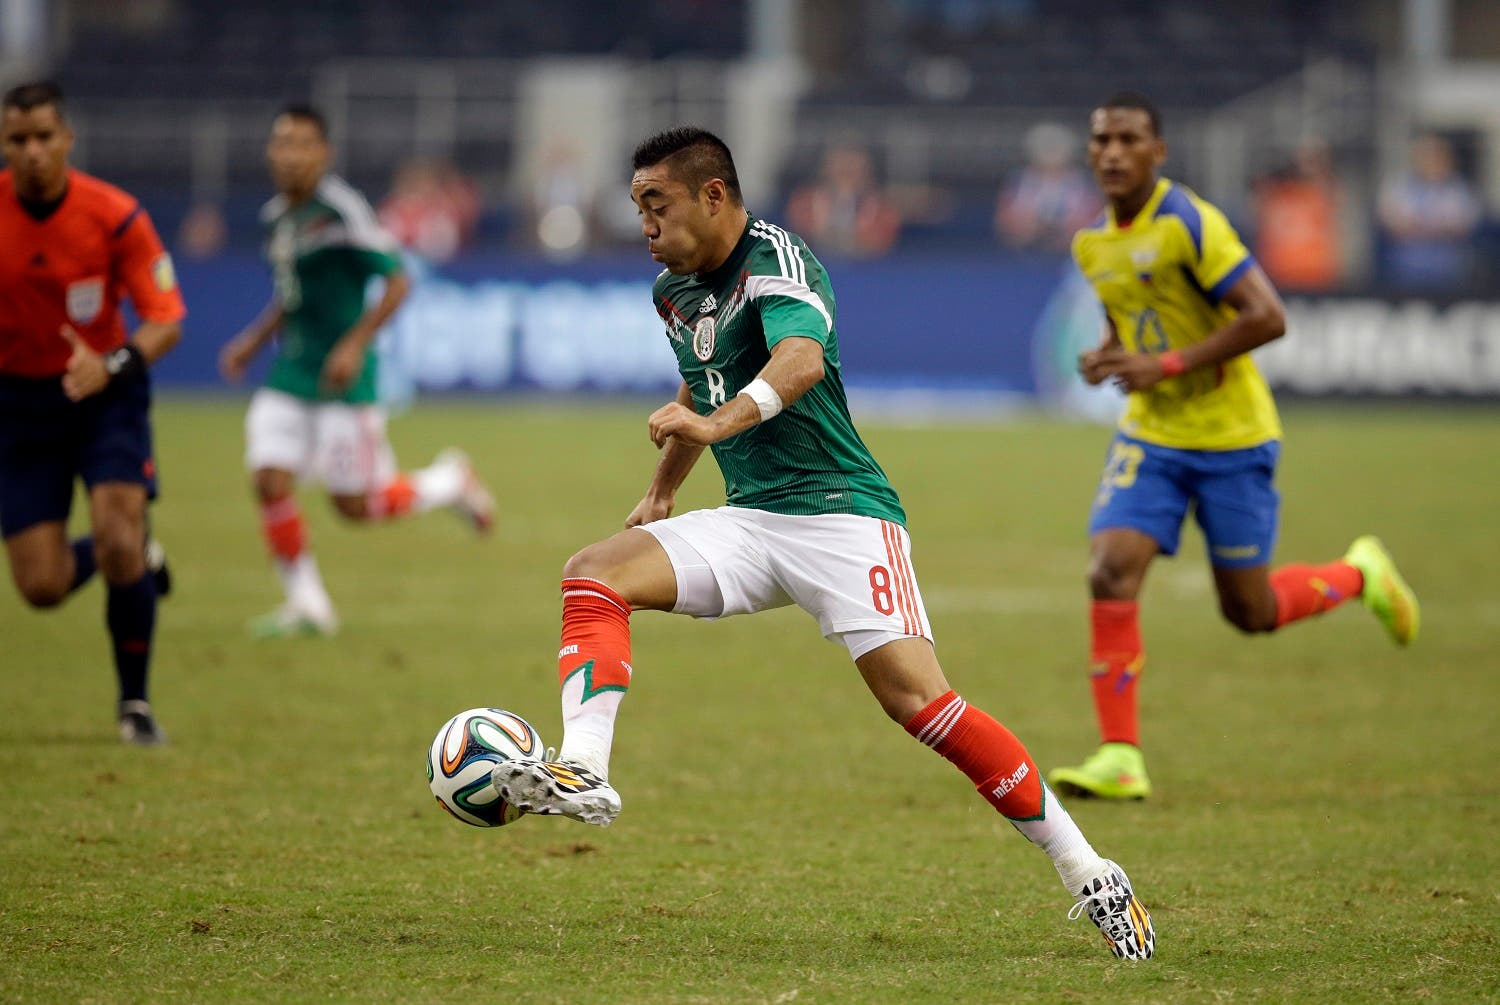 In his May 31, 2014 picture Mexico midfielder Marco Fabian controls the ball against Ecuador during a friendly soccer match in Arlington, Texas. Eintracht Frankfurt has signed Mexico midfielder Marco Fabian, the Bundesliga club says Thursday Dec. 24, 2015. The attacking midfielder signed a contract through mid-2019. Fabian last played for CD Cruz Azul on loan from Deportivo Guadalajara. He was on the Mexican team at the 2014 World Cup in Brazil and won gold with Mexico at the 2012 London Olympics. (AP)